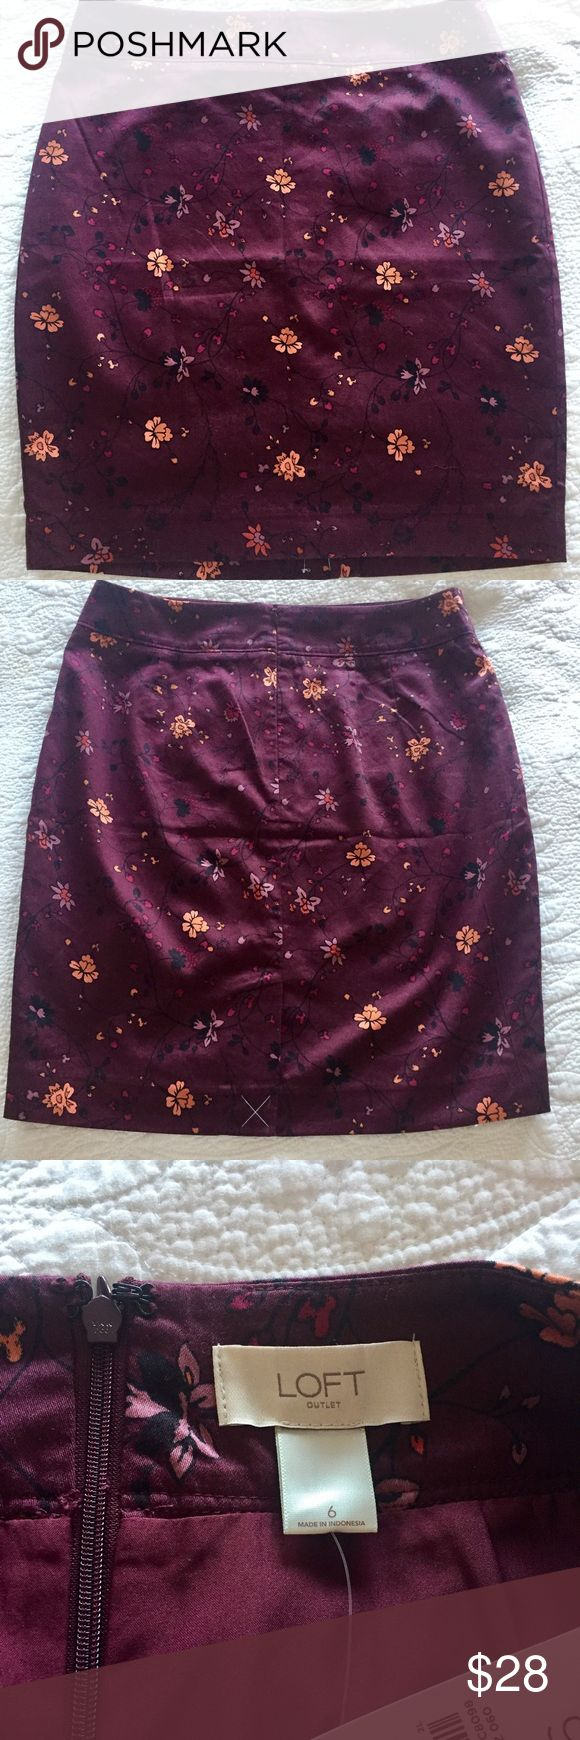 """🆕 LOFT Pencil Skirt An absolutely stunning pencil skirt by LOFT.  A 100% cotton fully and fully lined with 100% polyester makes this skirt a beautiful and must have addition to your wardrobe!  This skirt is 20"""" in length and sits on the hips. A beautiful wine burgundy color with coral, magenta and lavender flowers on black vines.  Size 6. NWT LOFT Skirts Pencil"""